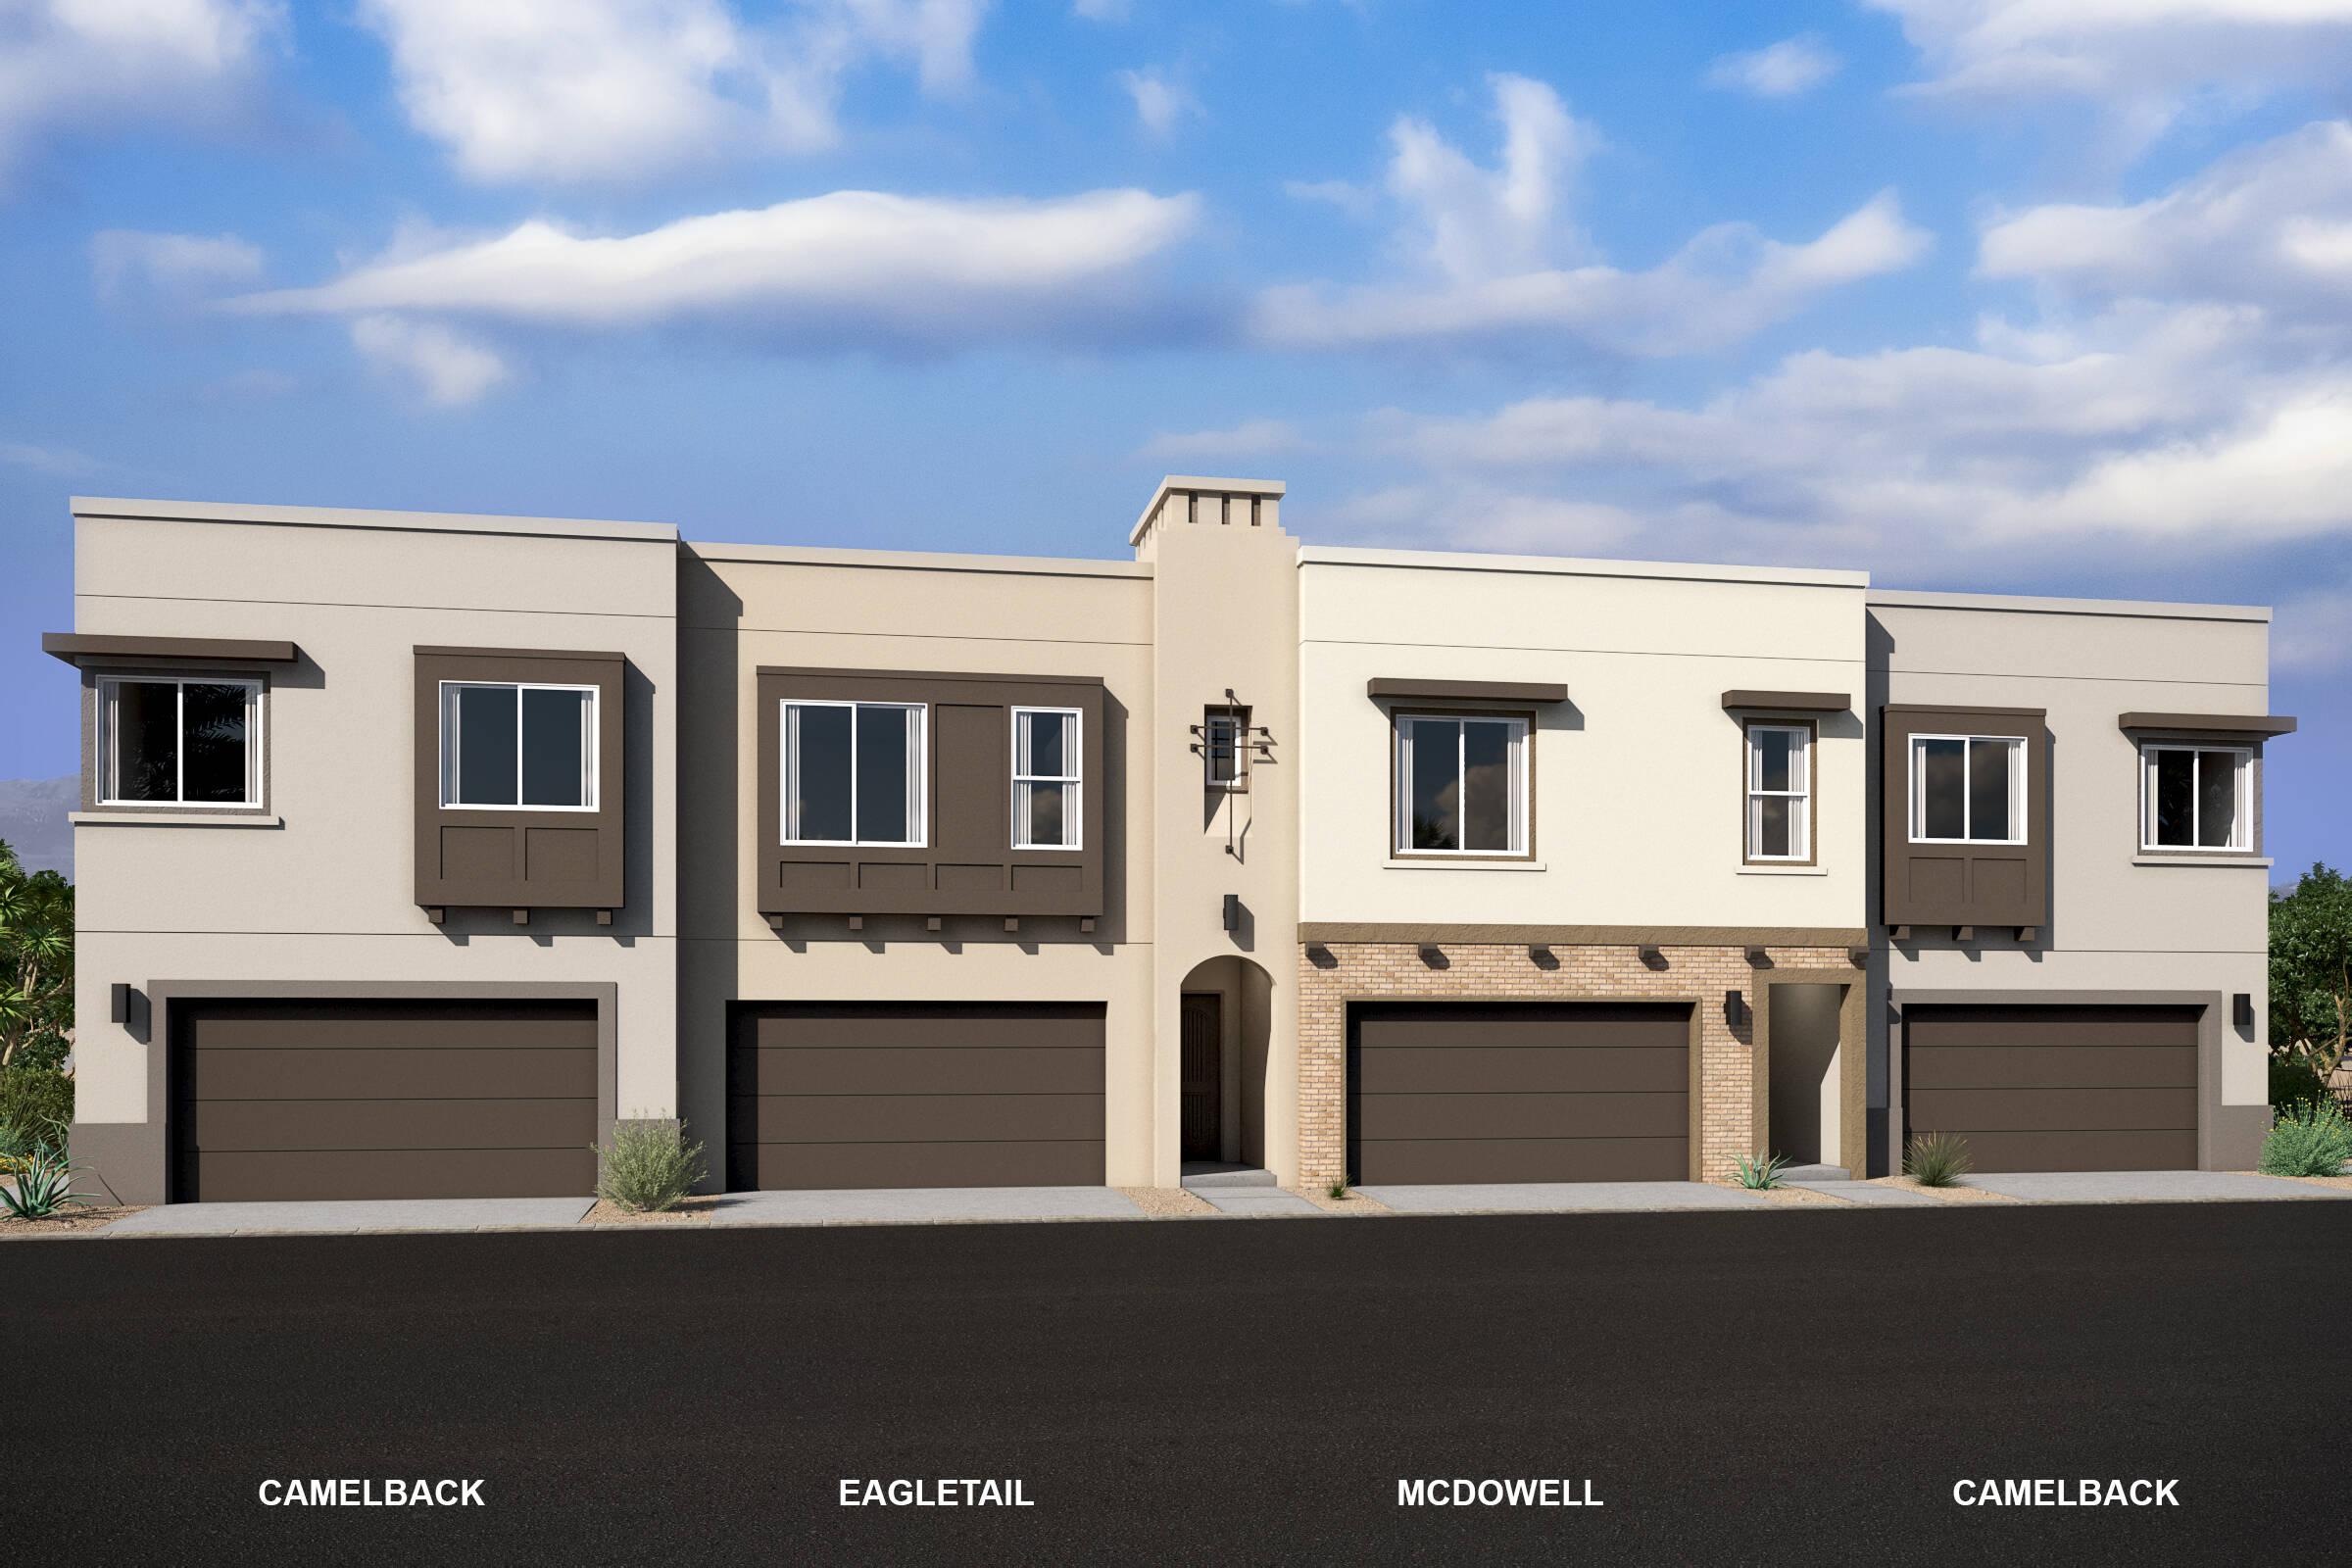 pinnacle at silverstone new scottsdale townhomes 4 plex